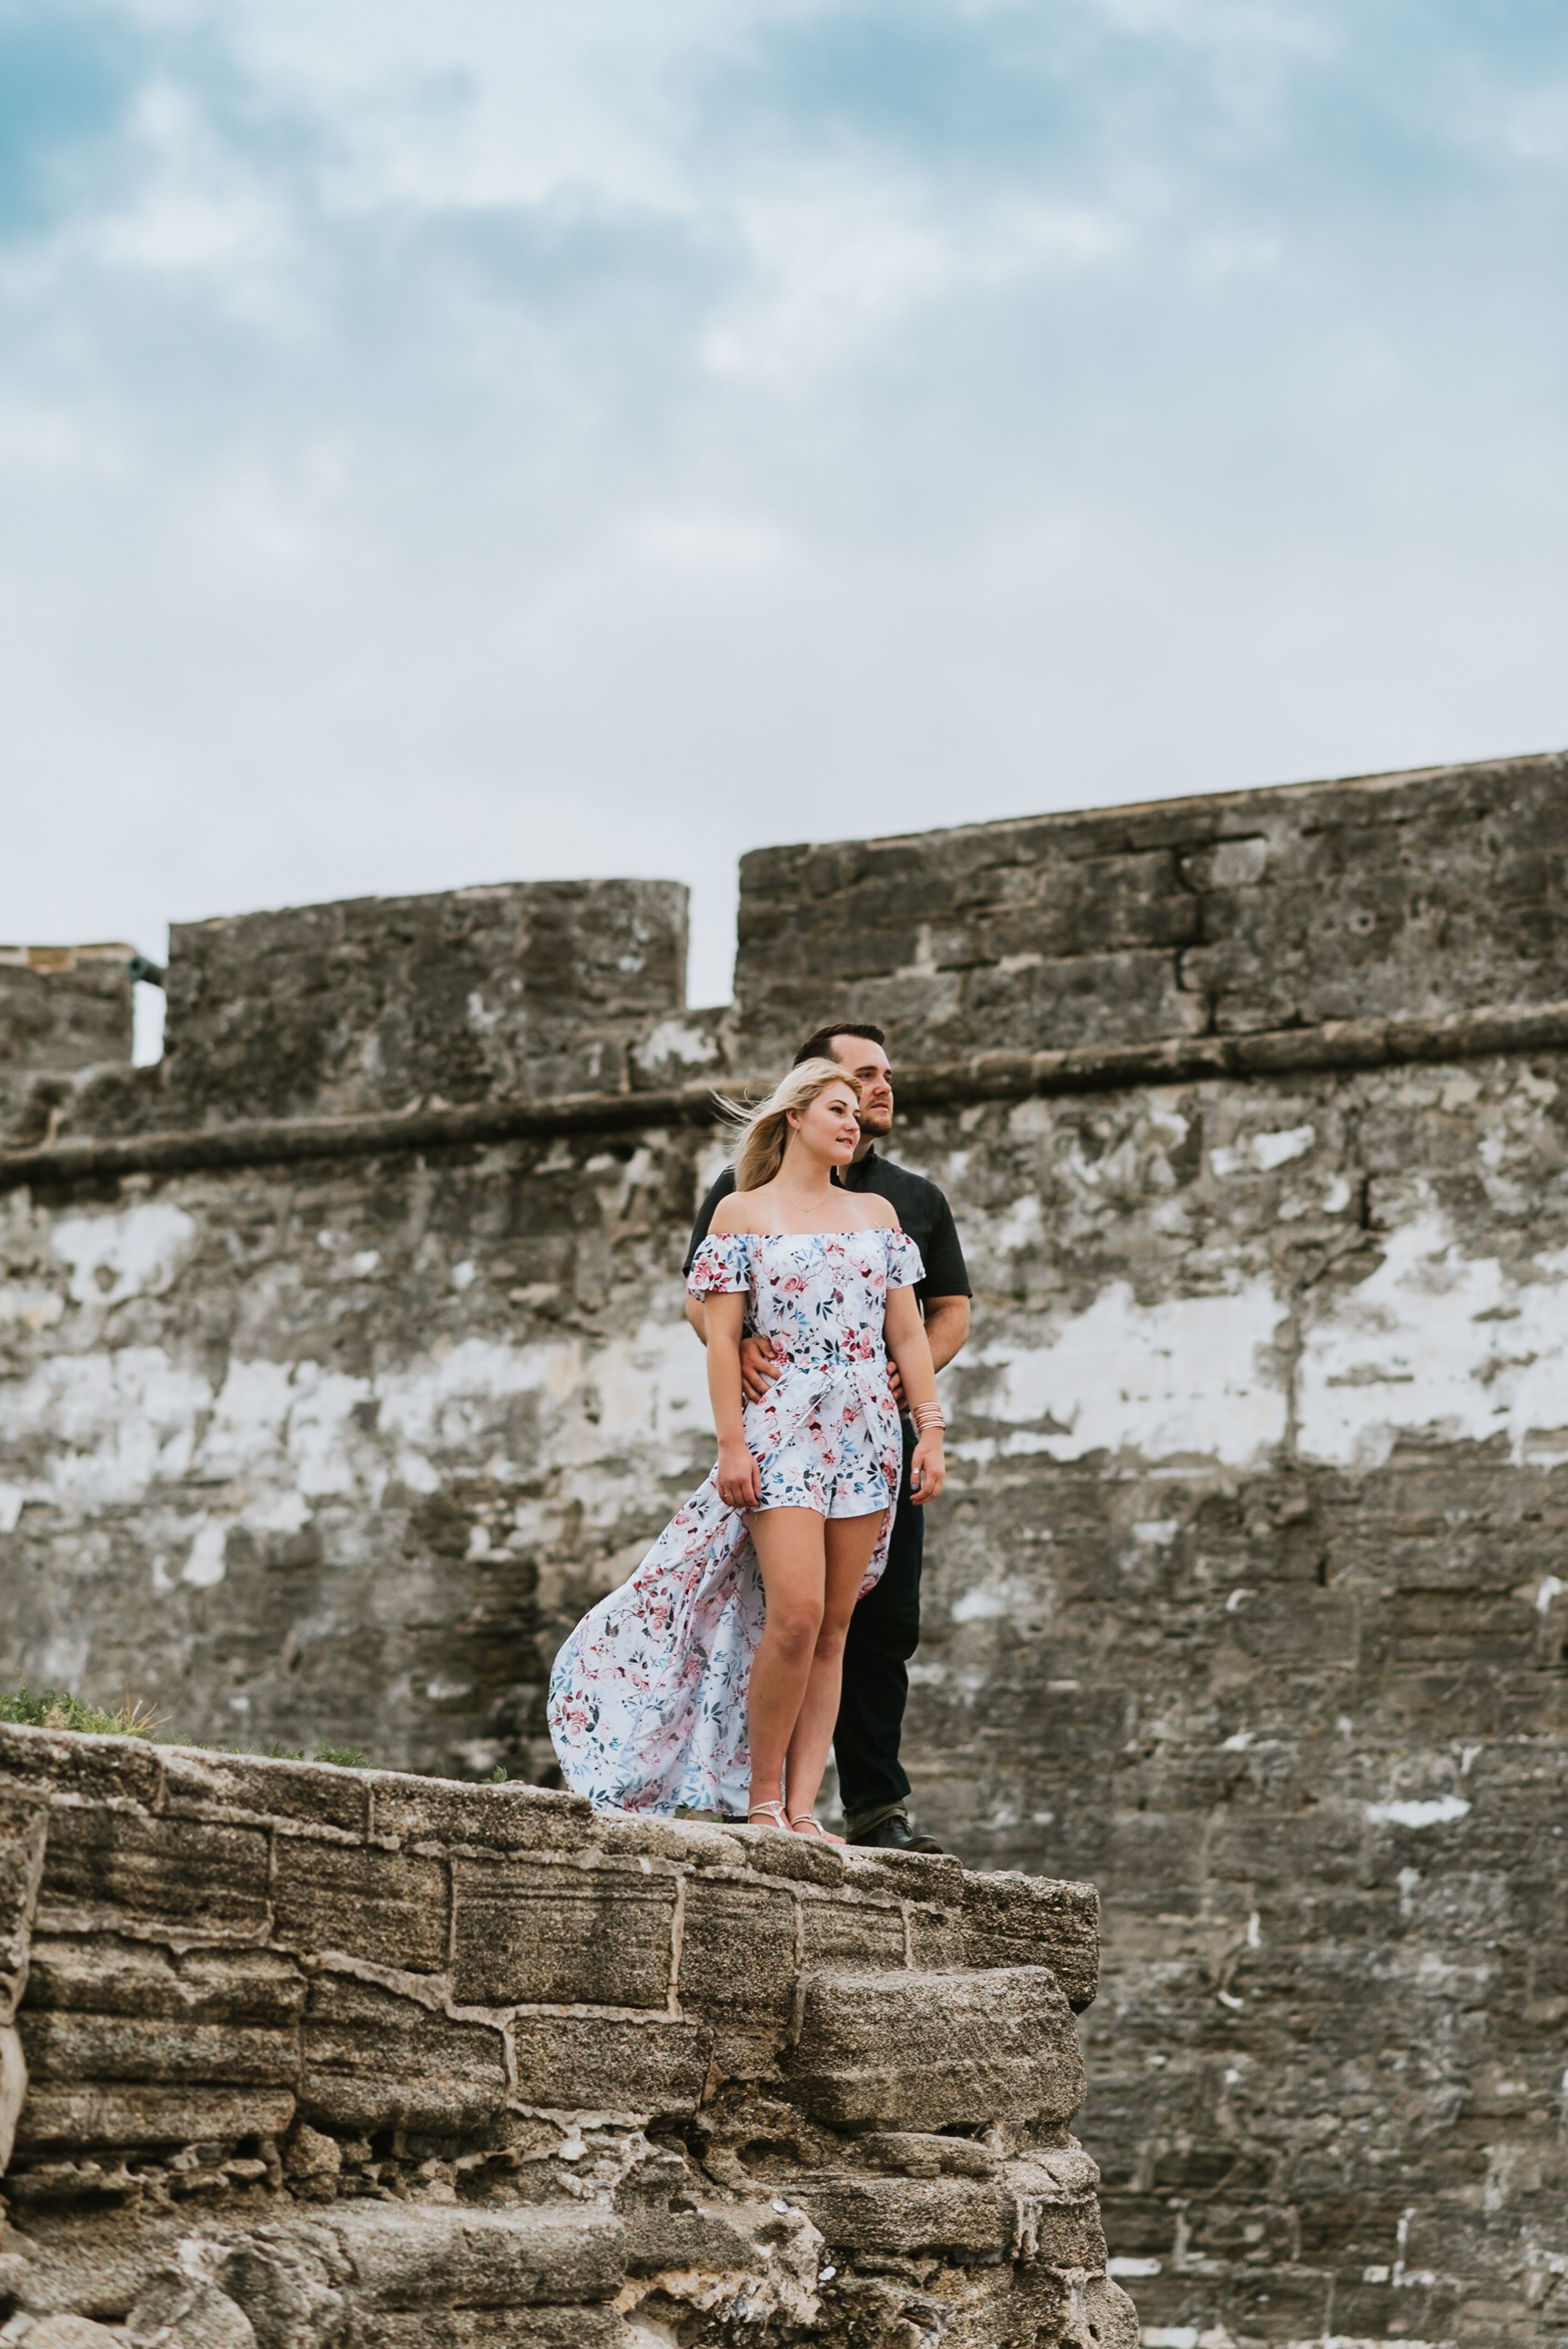 Tampa Florida Couples Photographer, Engagement Session in St. Augustine Florida, Engagement Location in Florida, Castillo de San Marcos, Florida Engagement Photographer, Tampa Florida Photographer